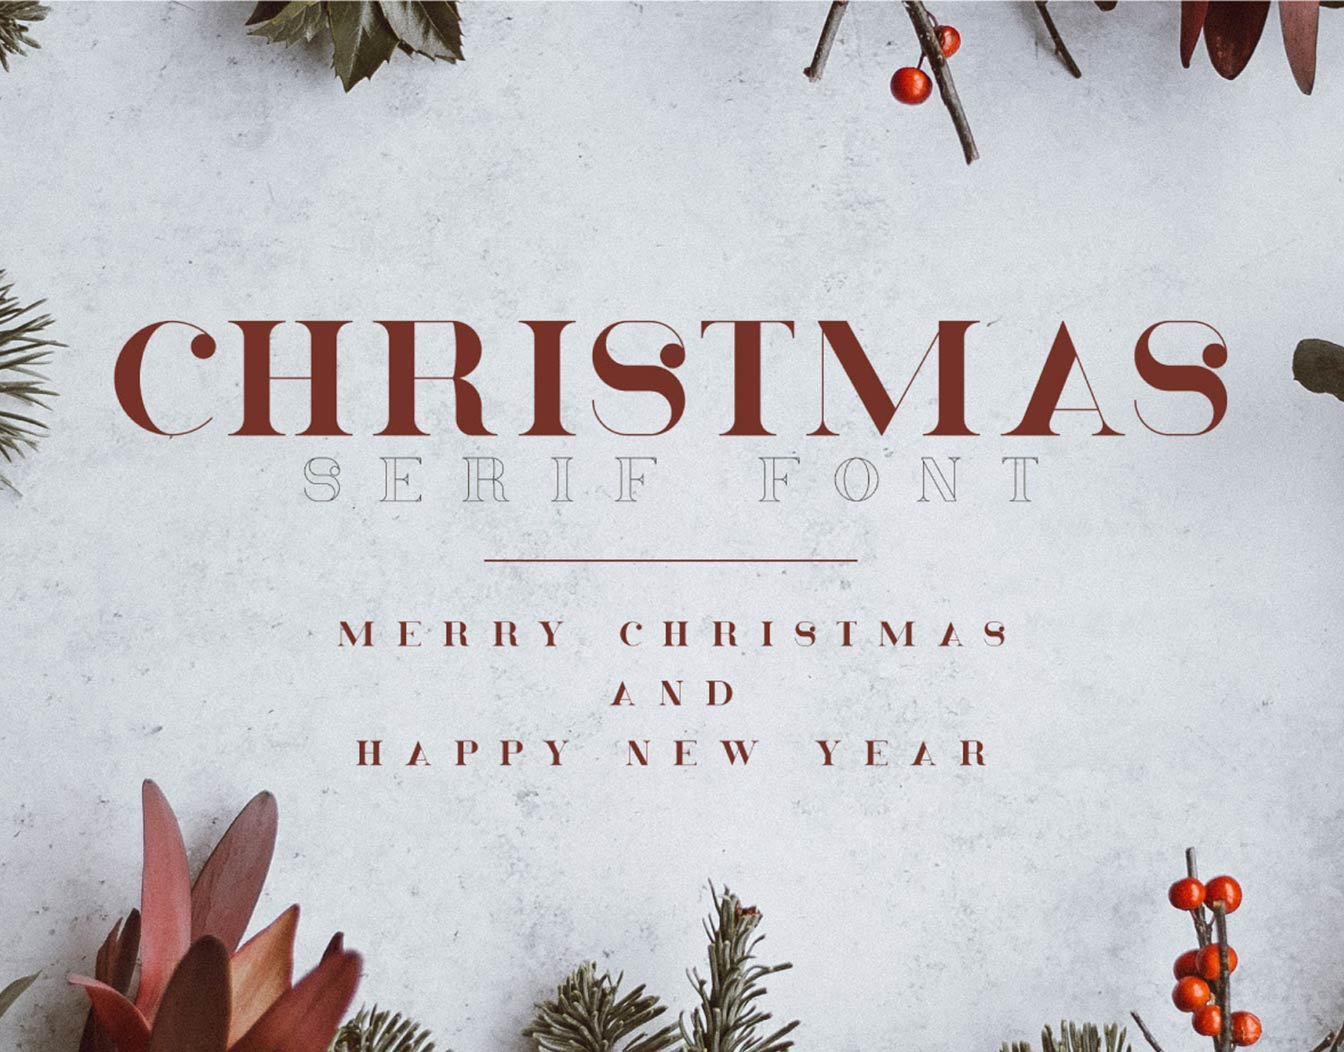 Christmas greeting written with vintage typeface